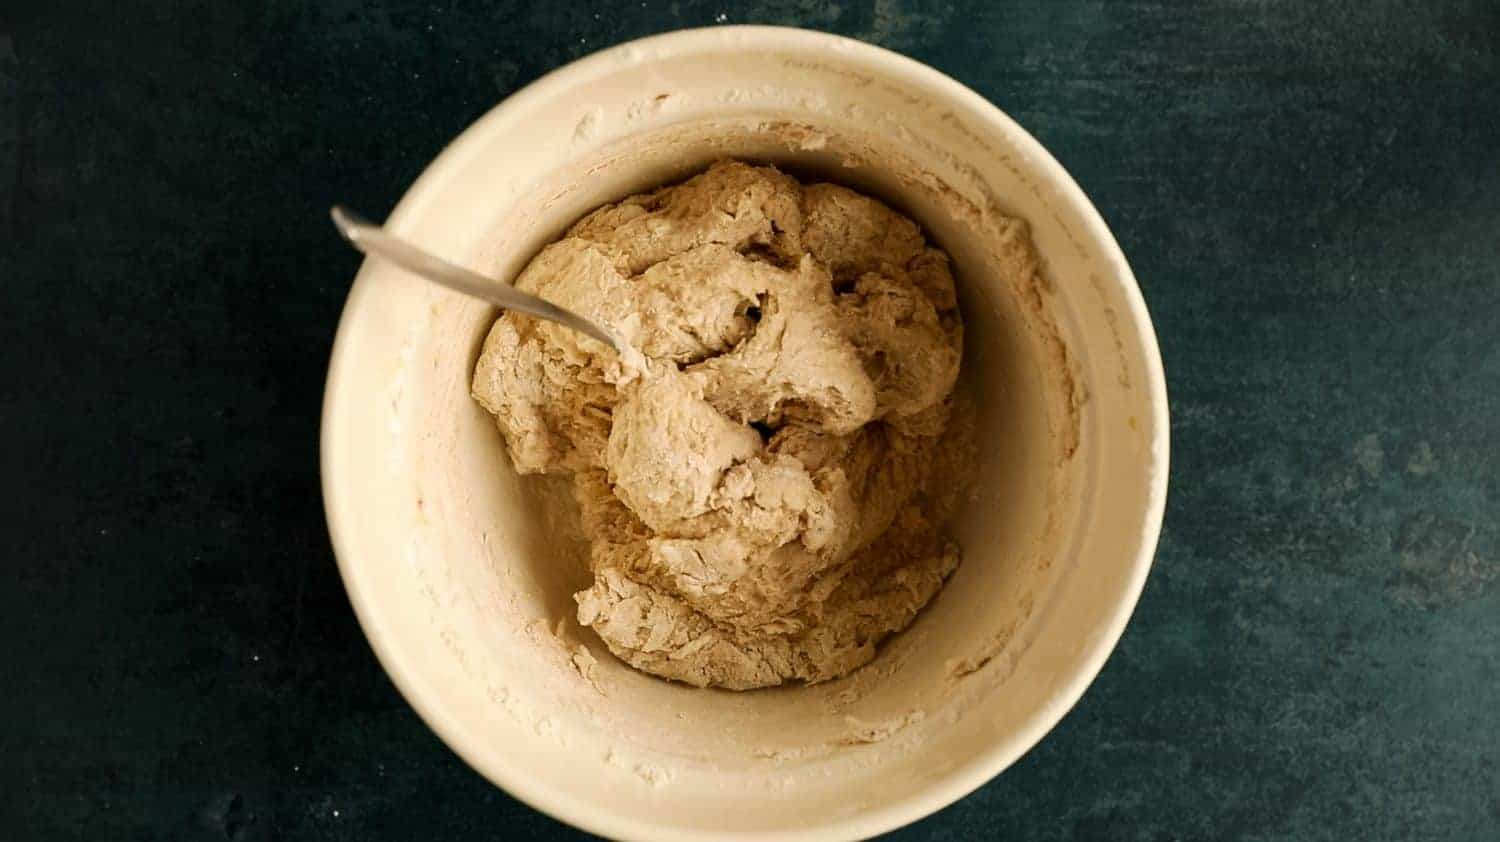 A mixing bowl with dough inside.